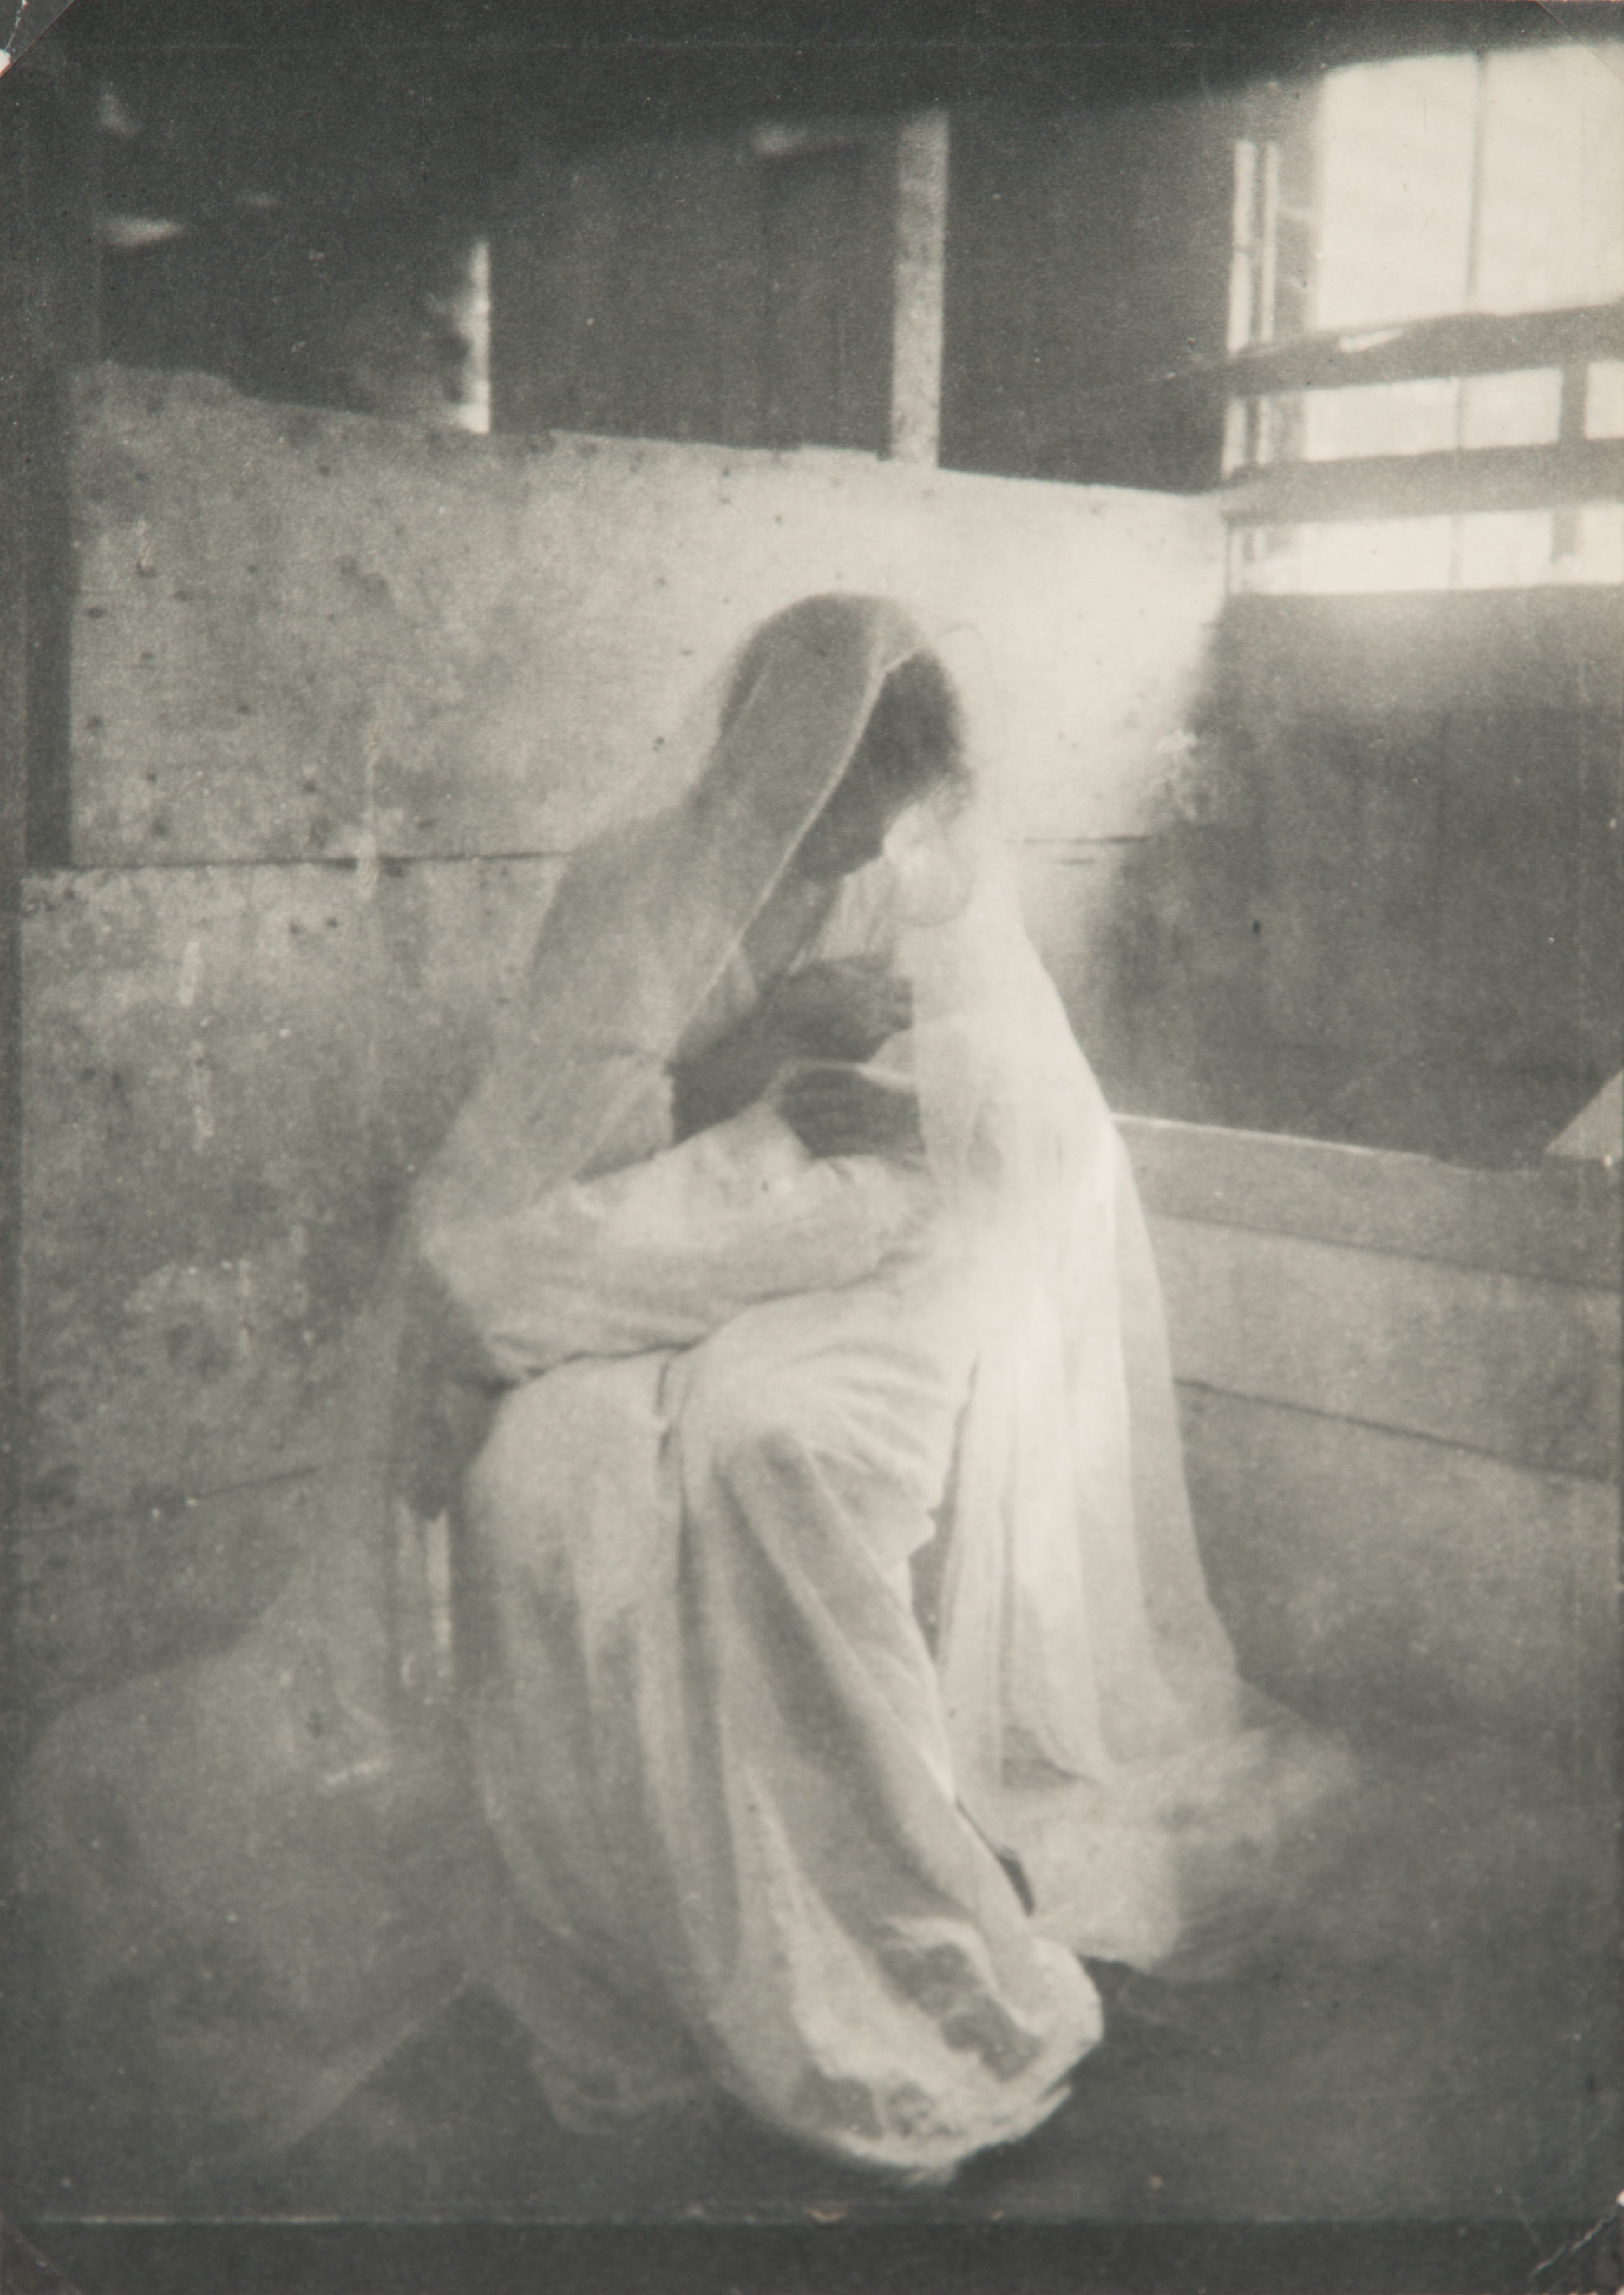 Ethereal black-and-white photograph of a women wearing a long white dress and gossamer veil, sitting in a stable, holding a swaddled infant. Dramatically illuminated by a shaft of light streaming in, she gazes down at the child cradled in her arms.